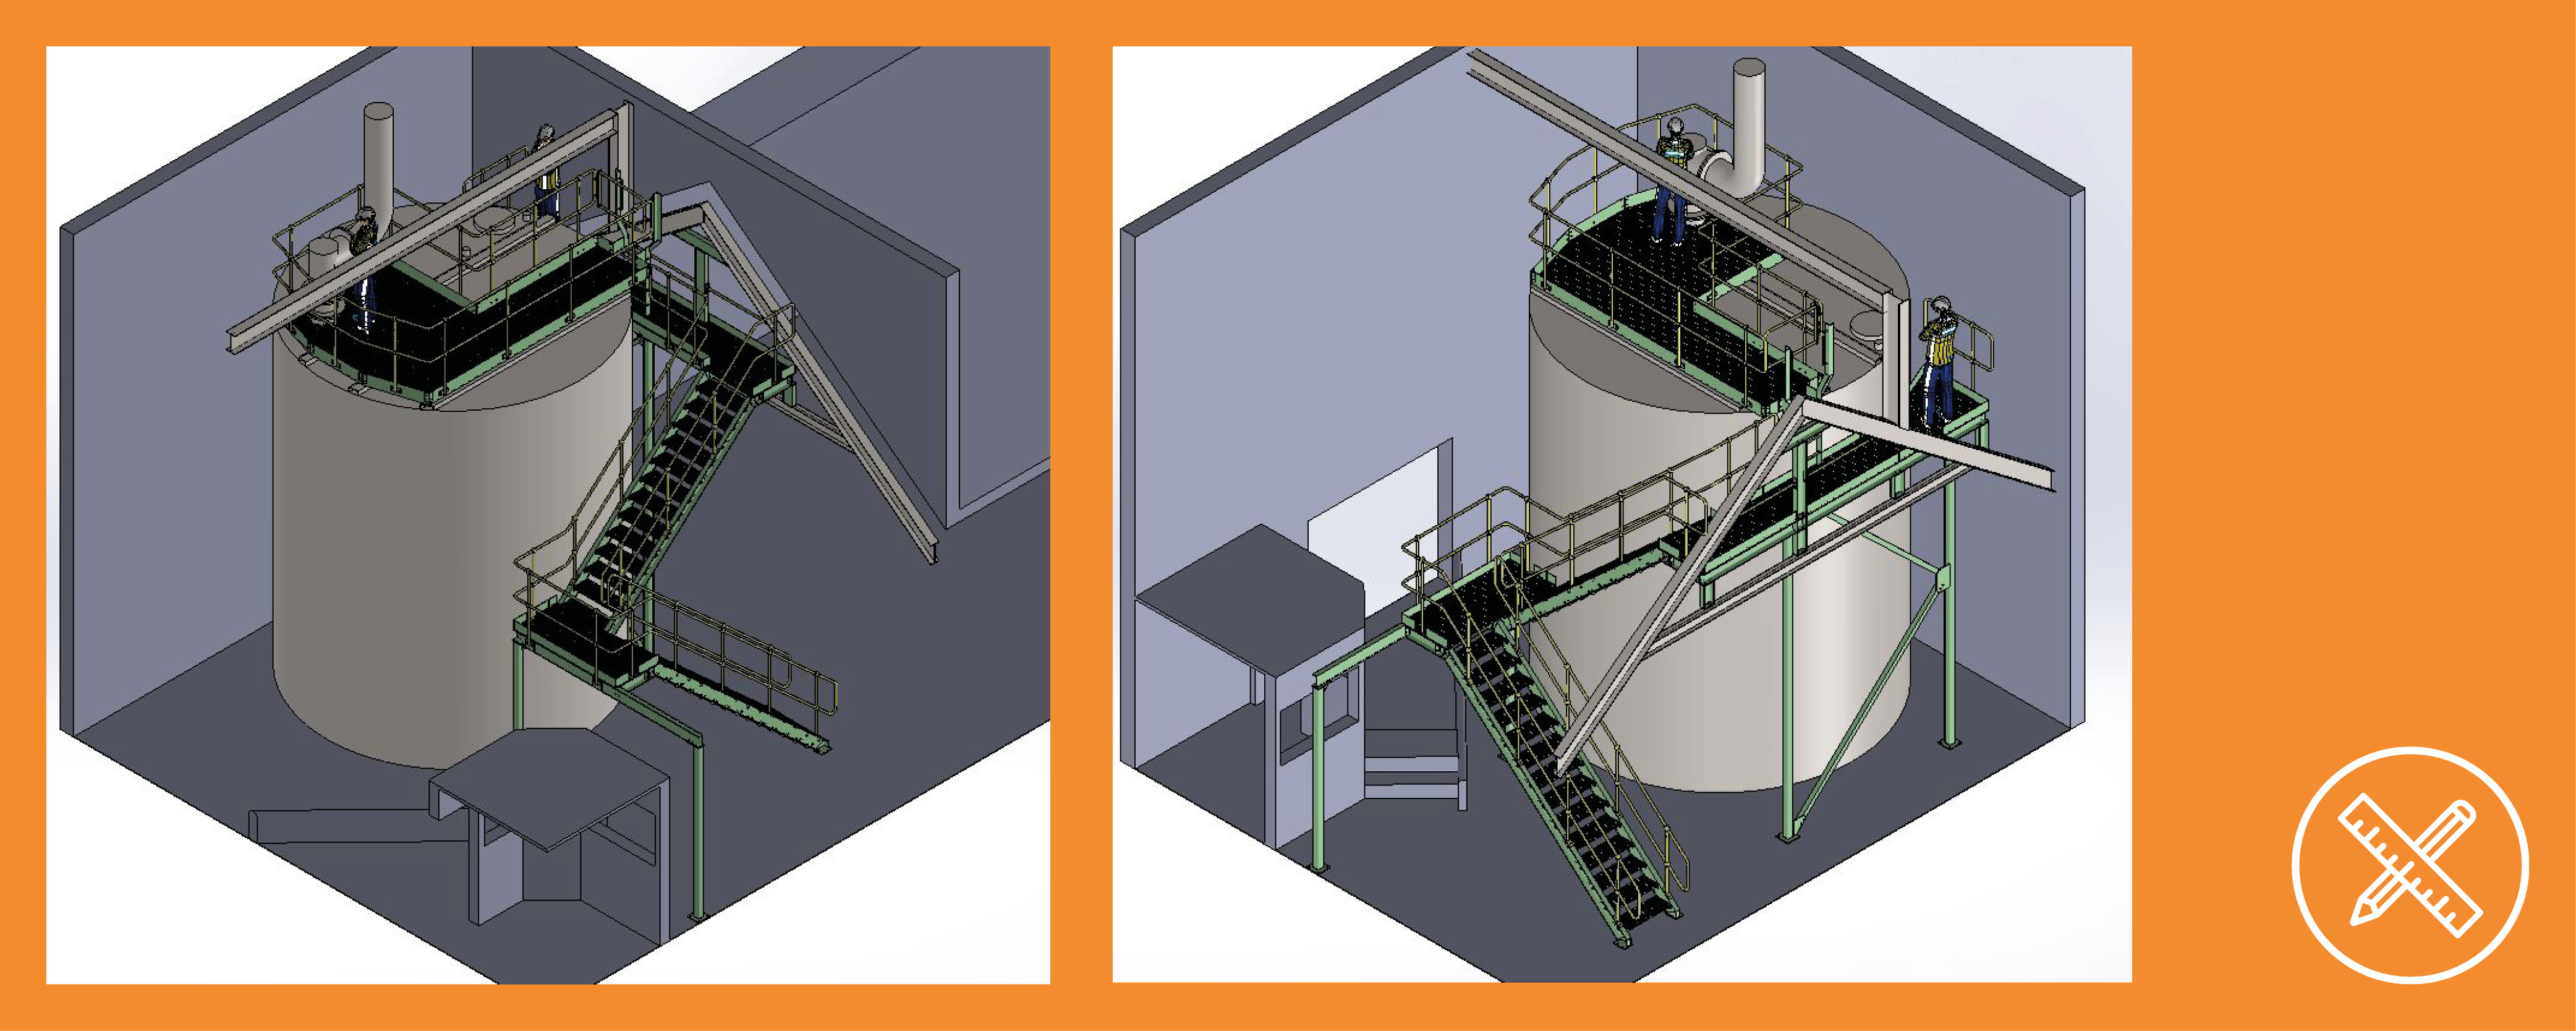 Tank access solution 3D design